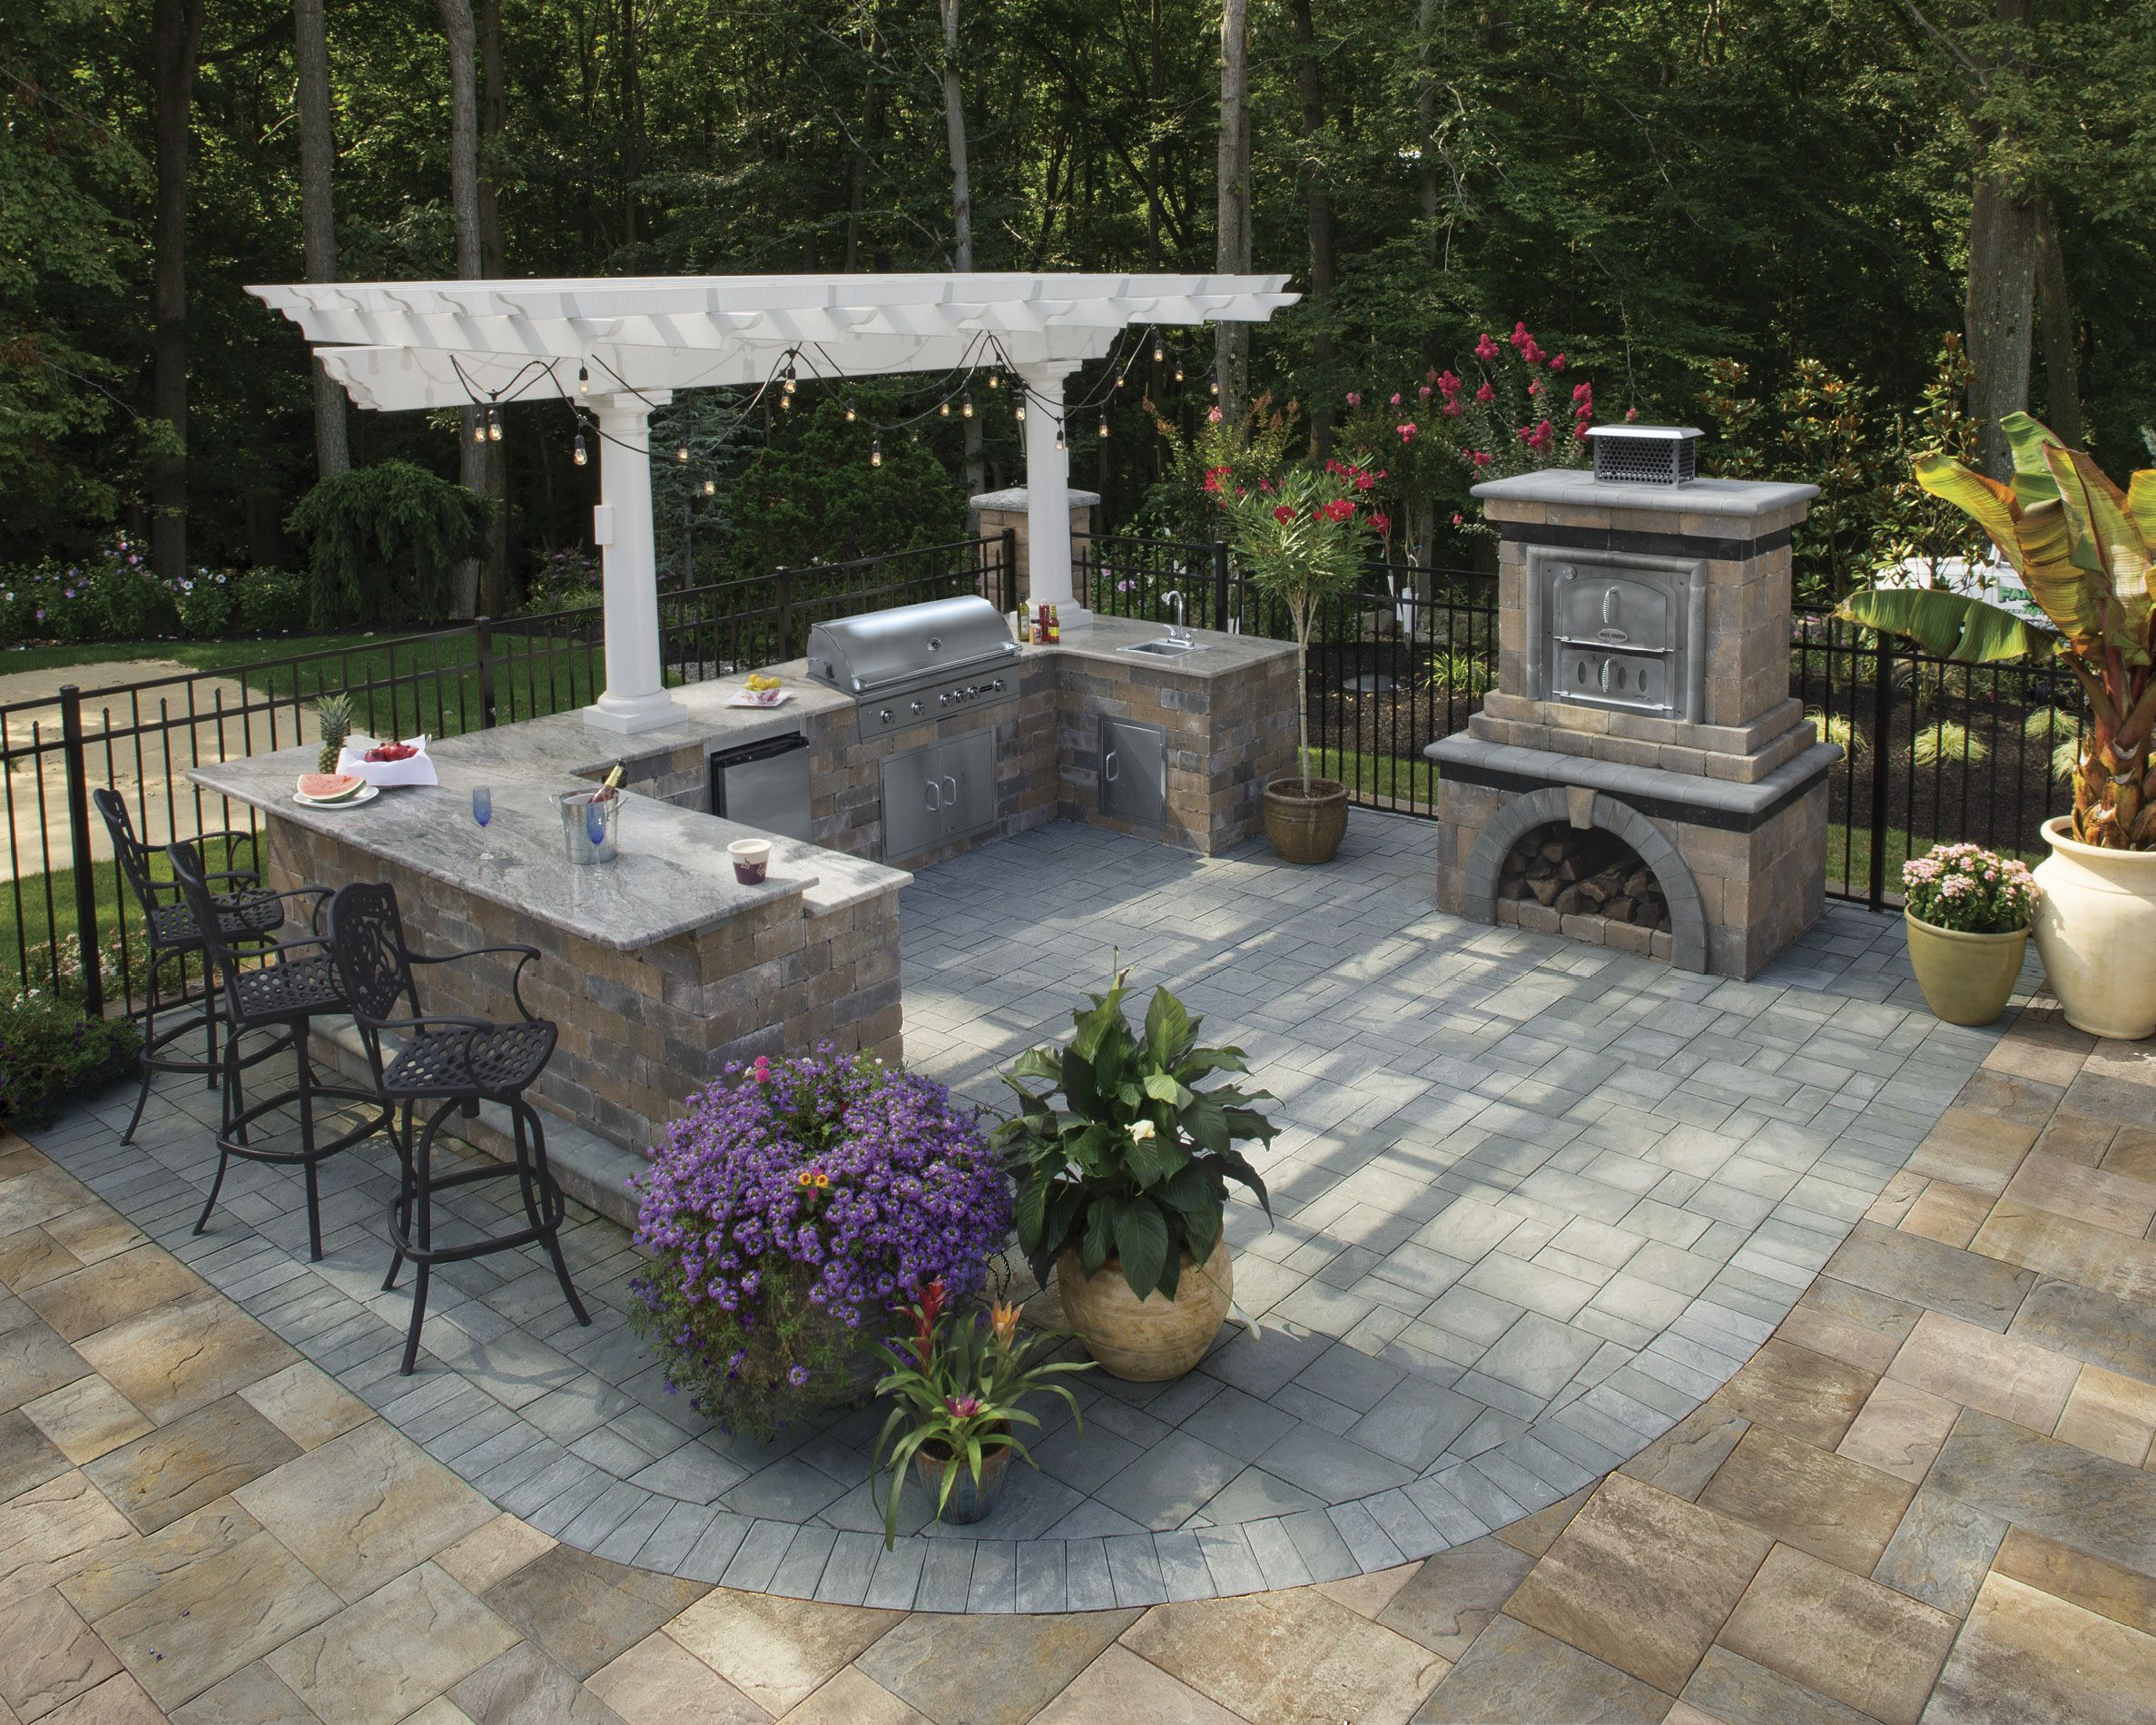 Cambridge pavingstones wall systems color options - Can You Picture This Outdoor Kitchen By Cambridge Pavers In Your Backyard Cambridge Pavingstones And